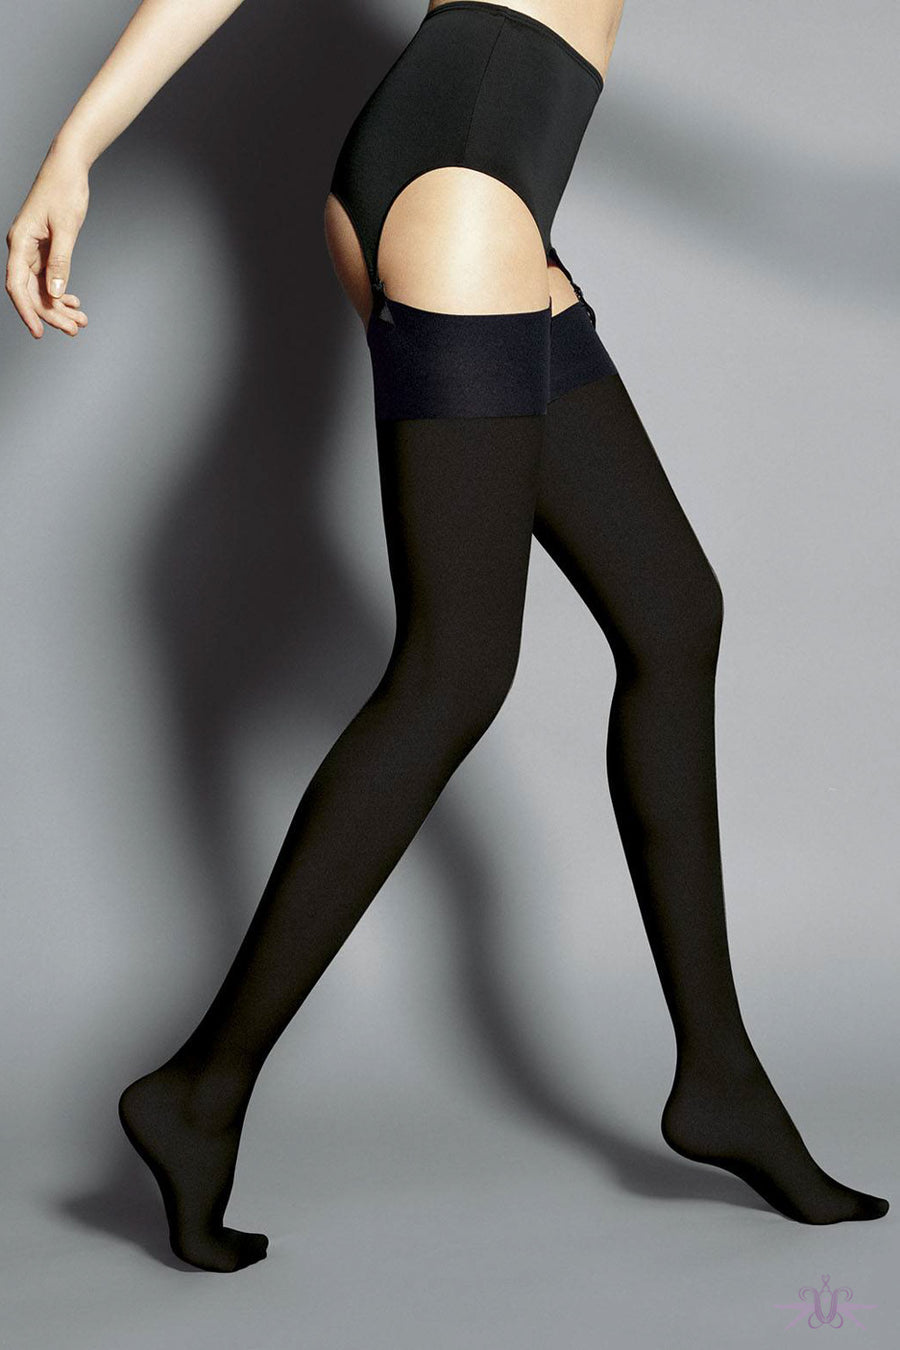 Veneziana Leila Opaque Stocking - Mayfair Stockings